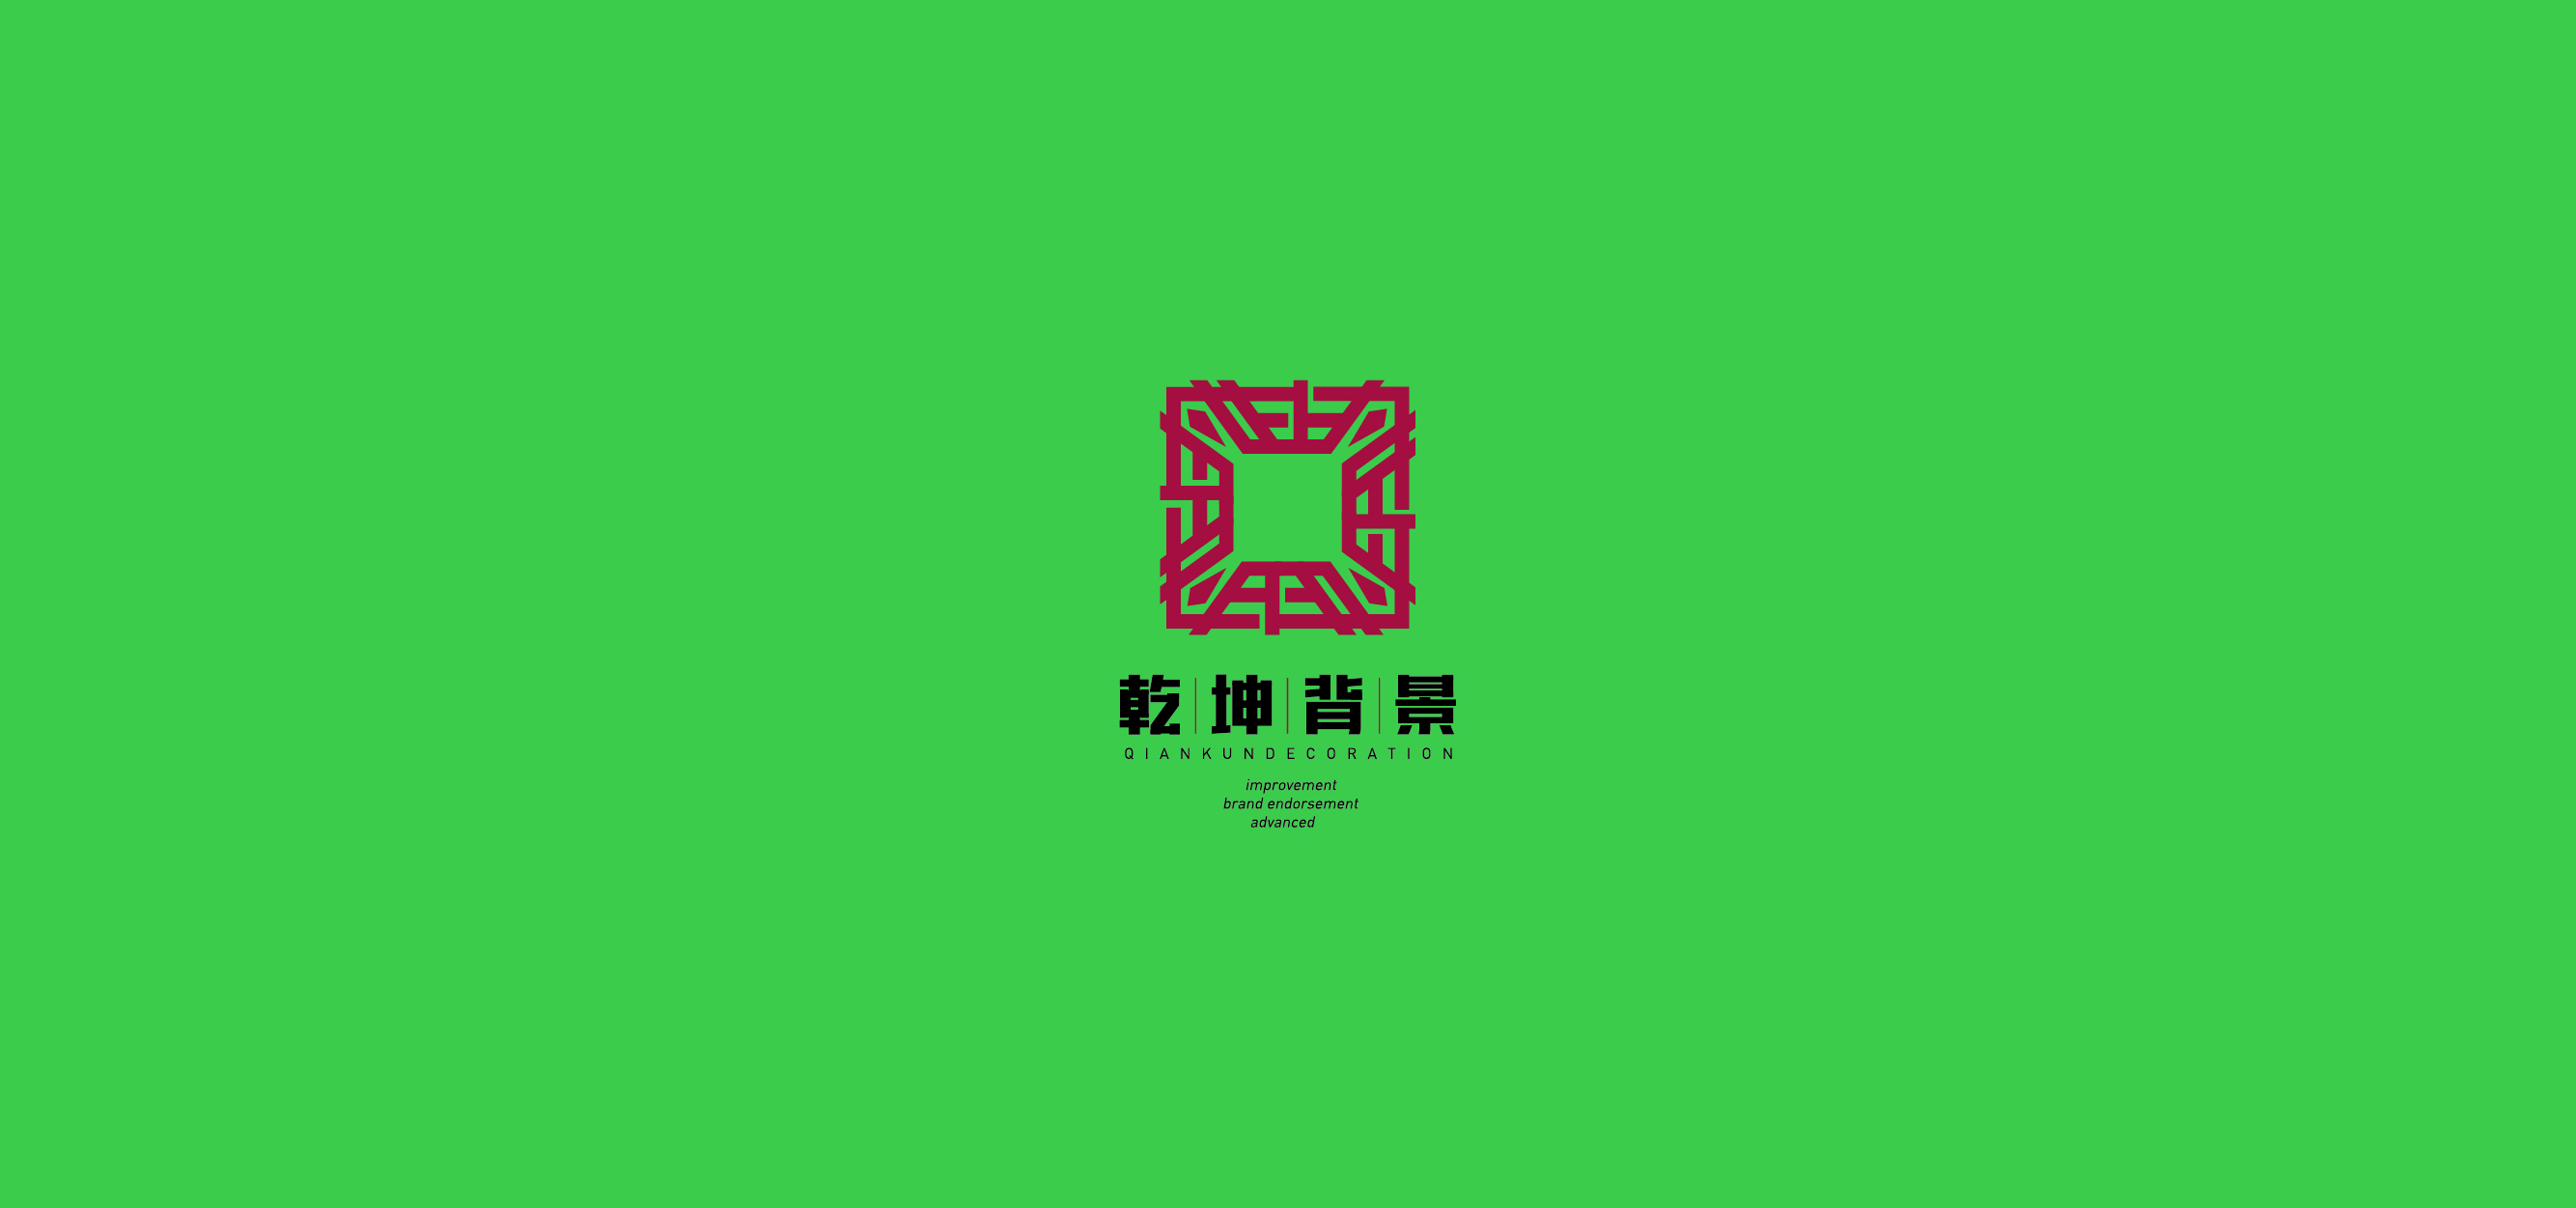 I think a group of Chinese logo design schemes that are helpful to your design.